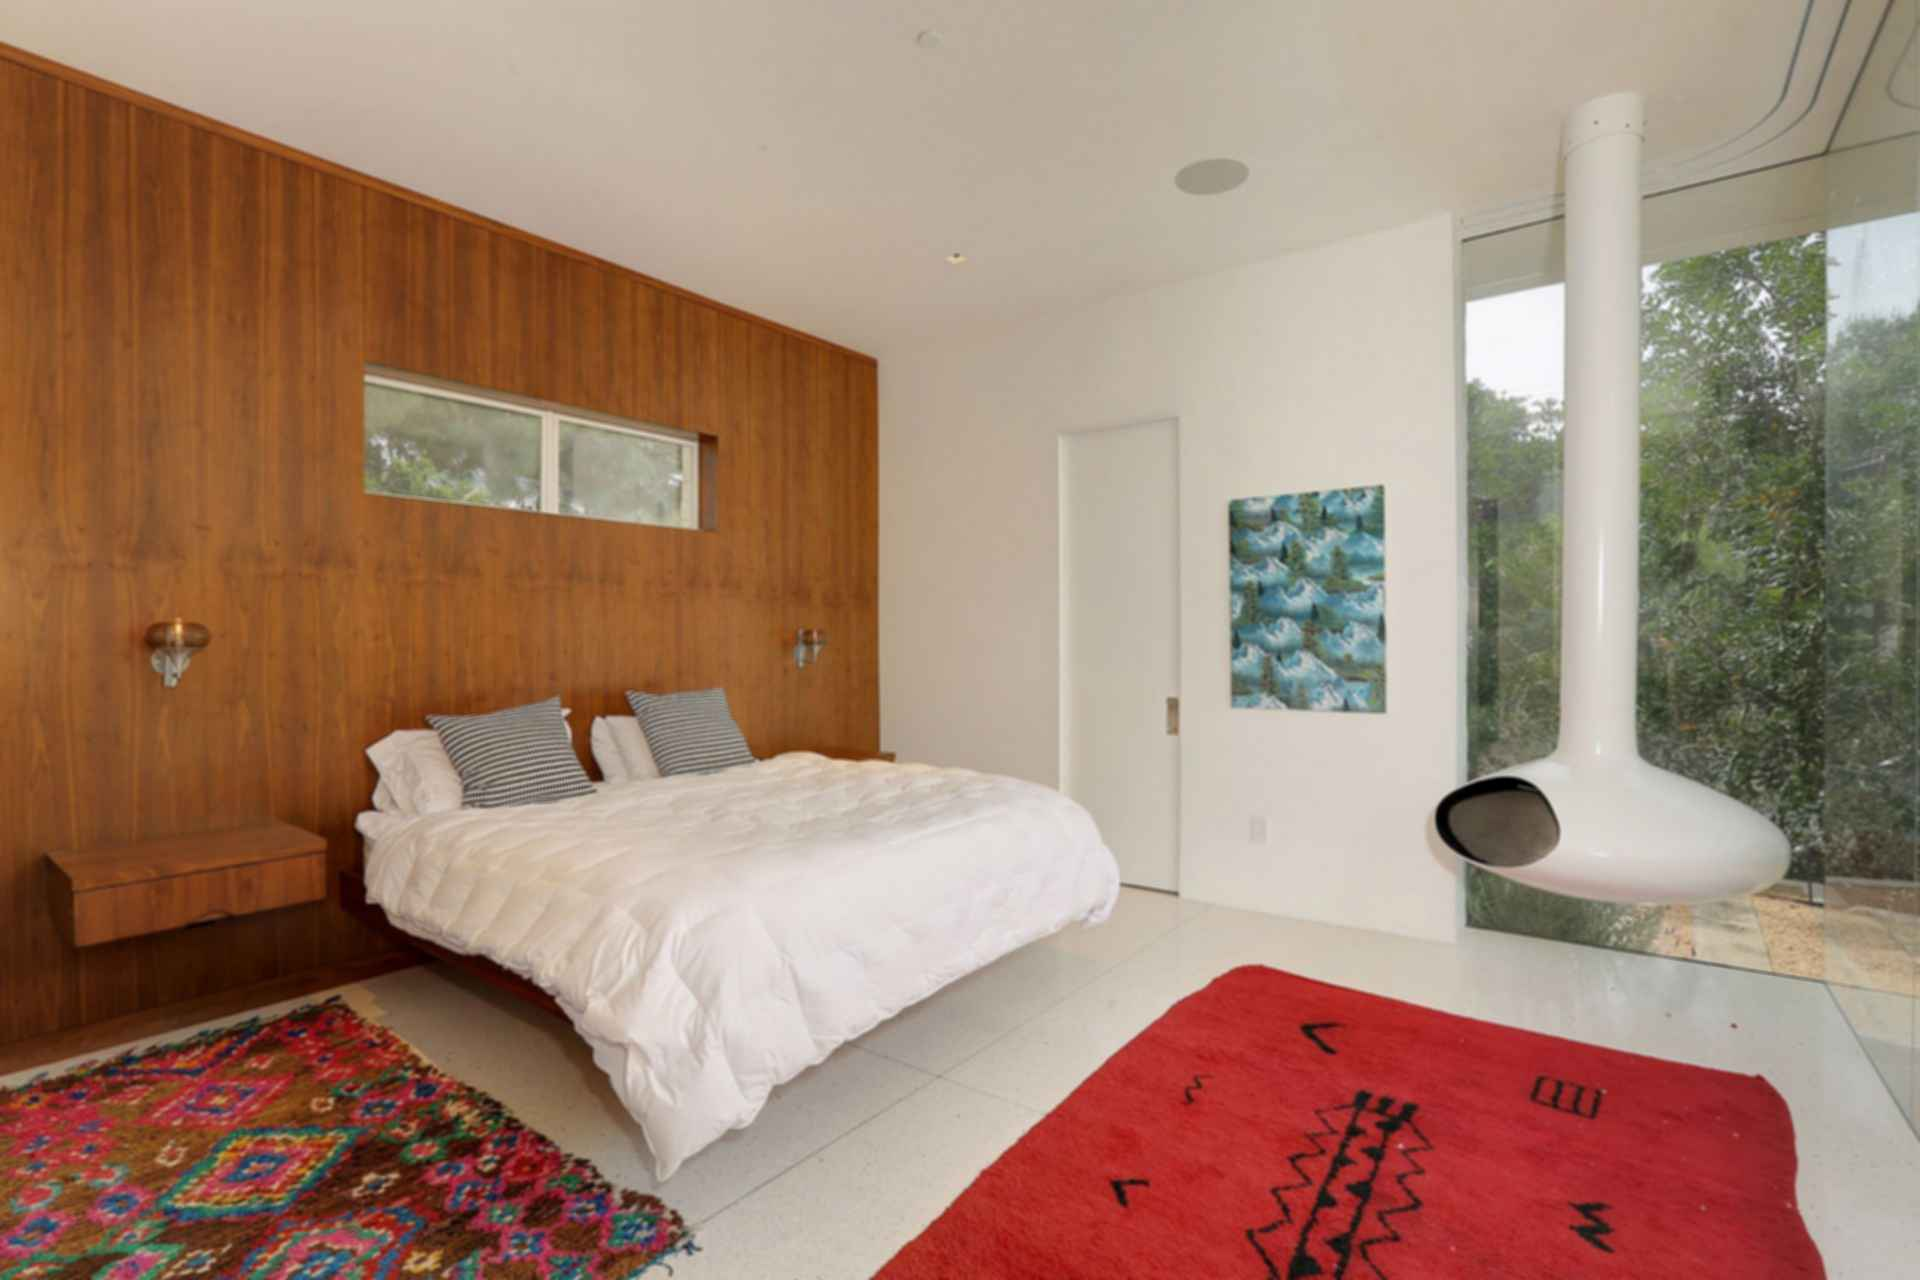 Hollywood Hills Residence - Bedroom